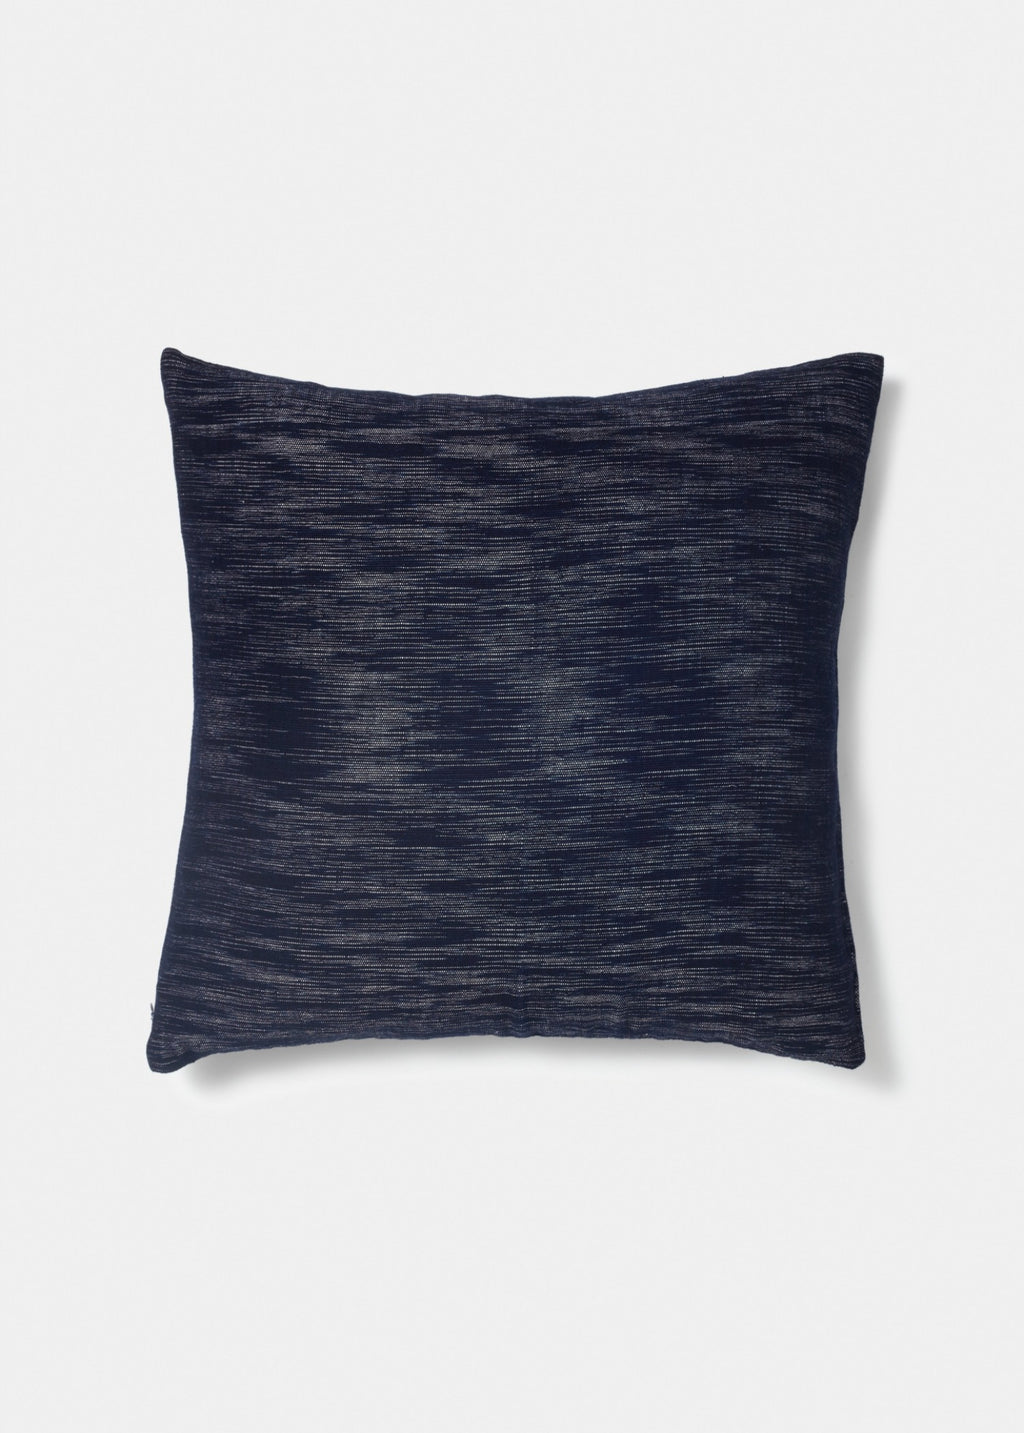 Indigo Pillow Random Ikat - YUYU Sustainable Home Goods